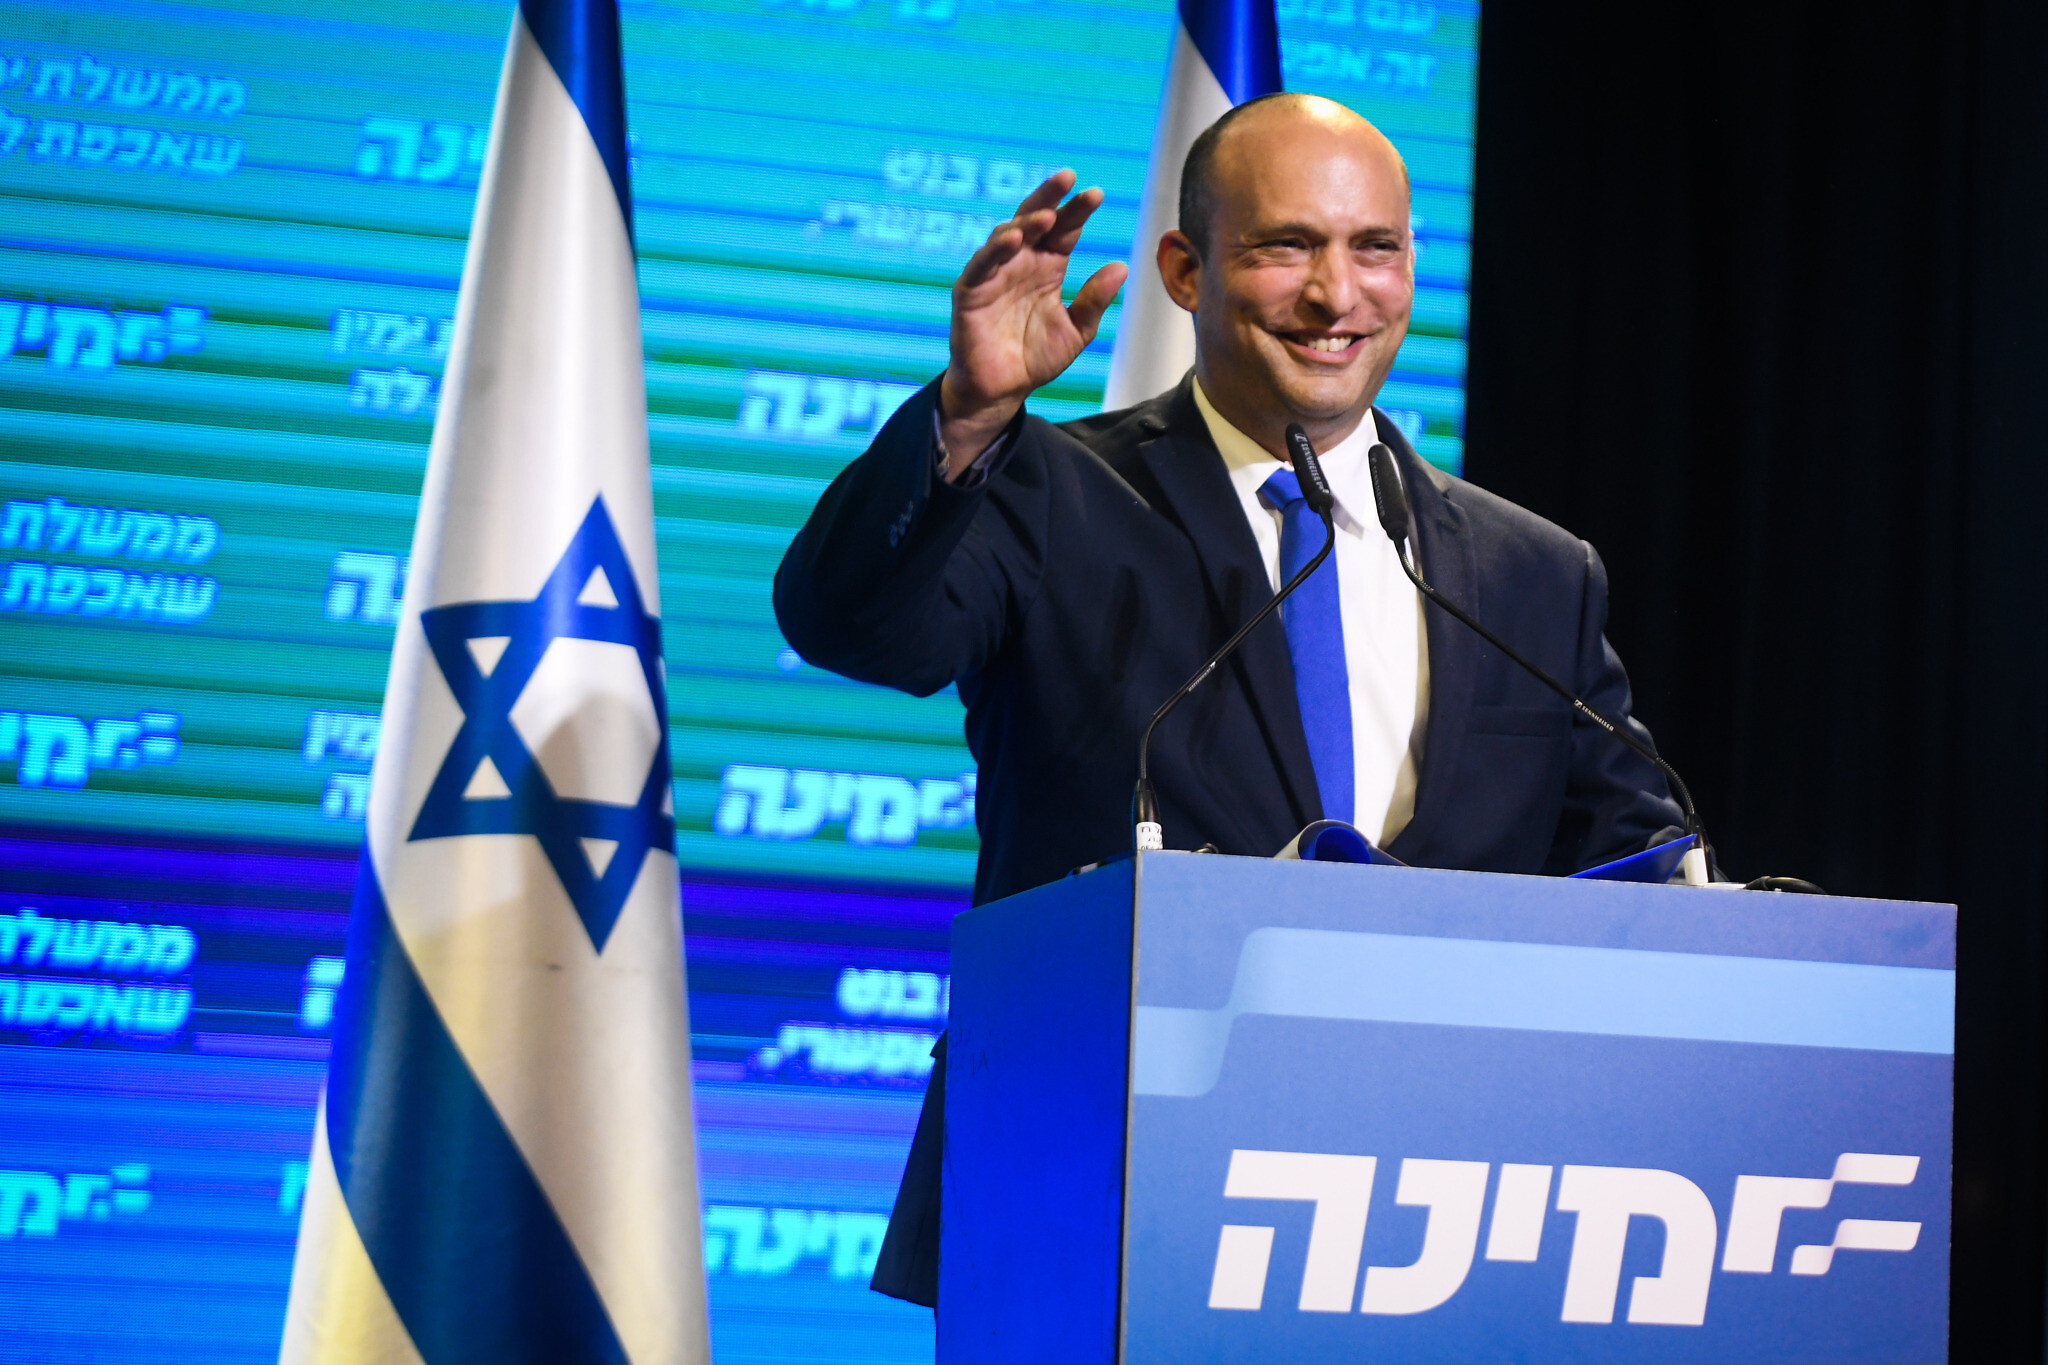 Naftali Bennett, head of the Yamina party seen with Yamina supporters at the party headquarters in Petah Tikva, on election night, on March 23, 2021. (Avi Dishi/Flash90)